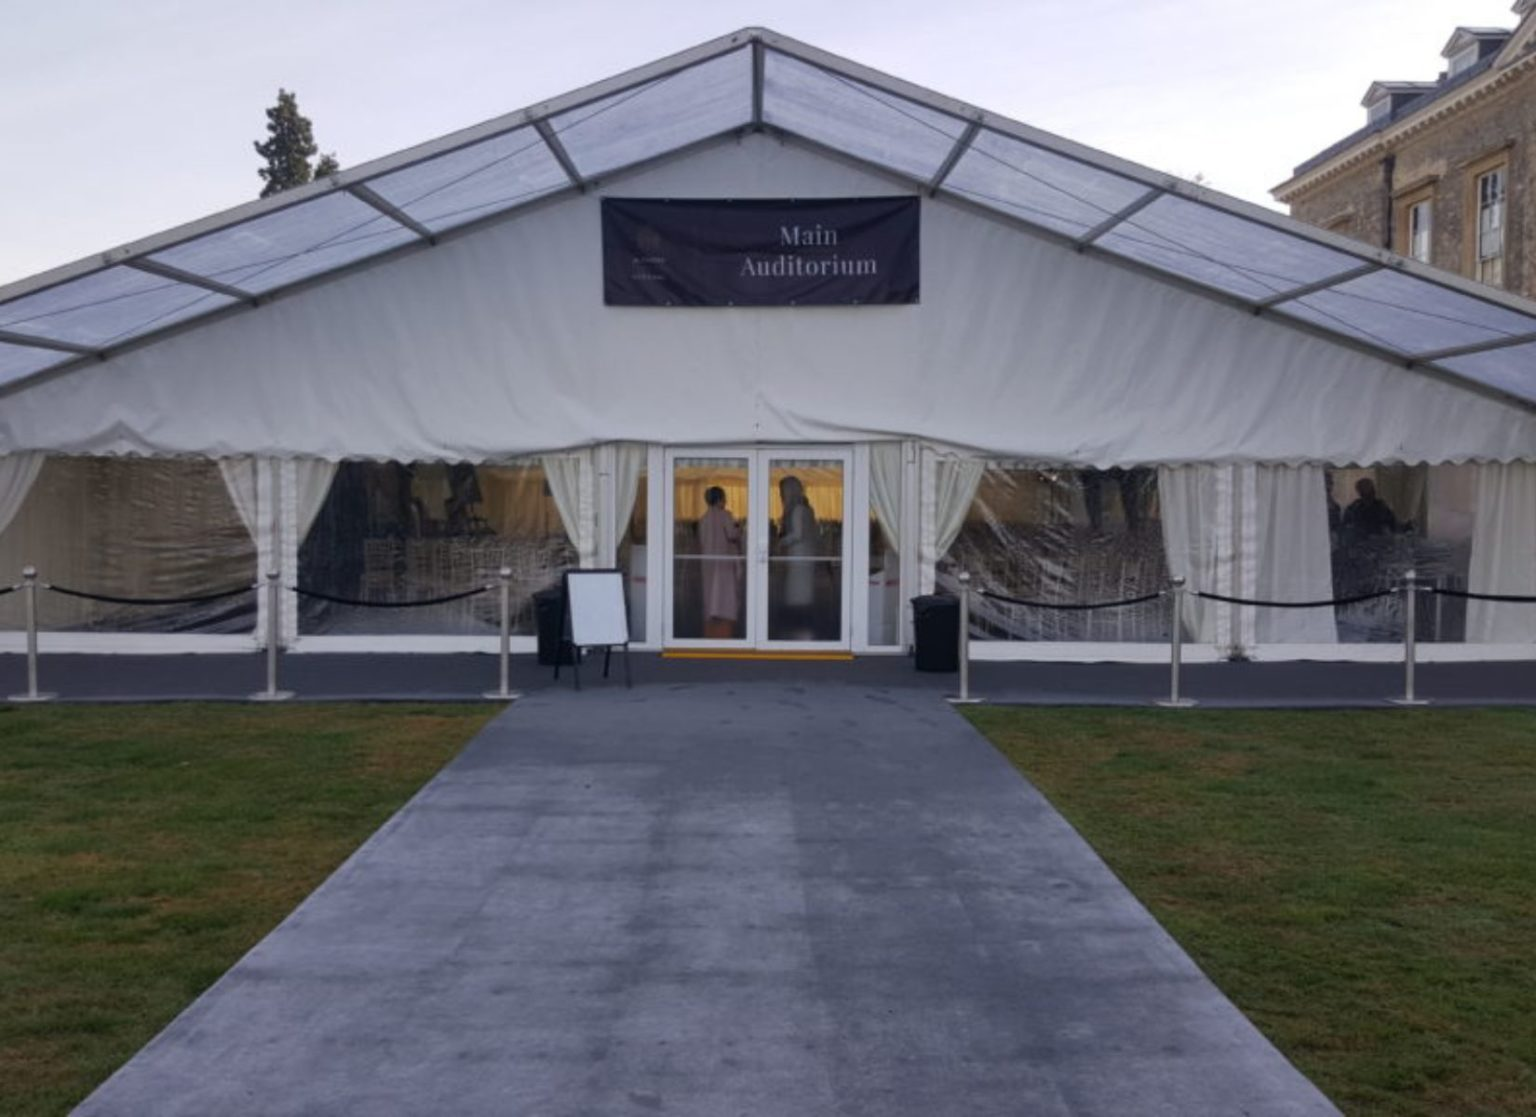 15 Meter Wide Corporate Event Marquee